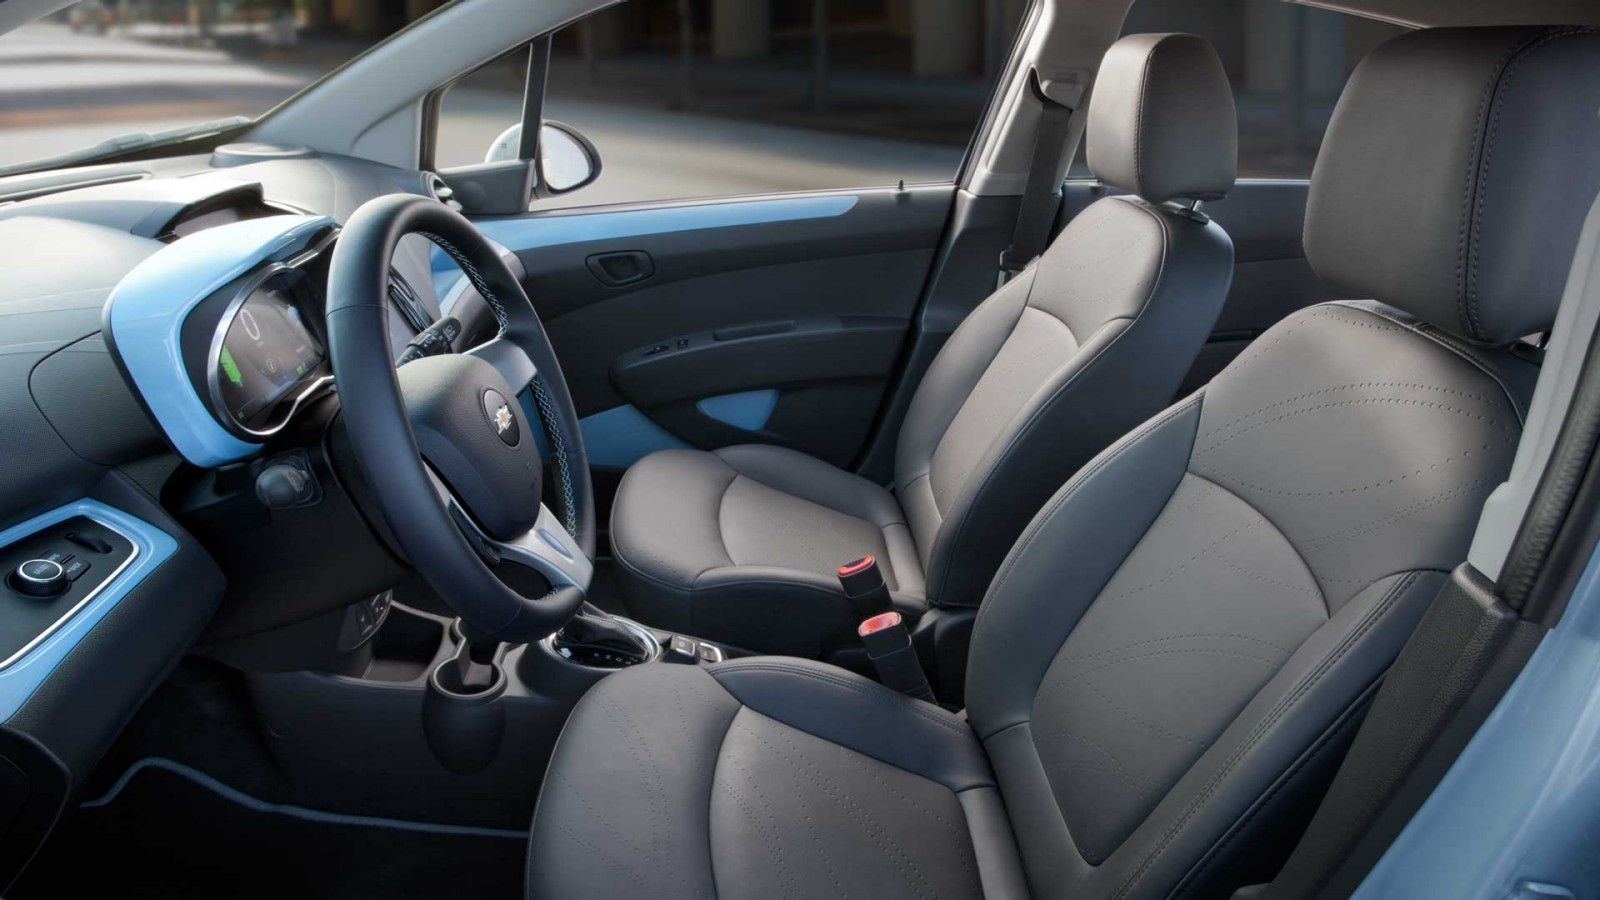 The 2015 Spark EV With The 2LT Trim. The Cloth Is Replaced By The  Leatherette